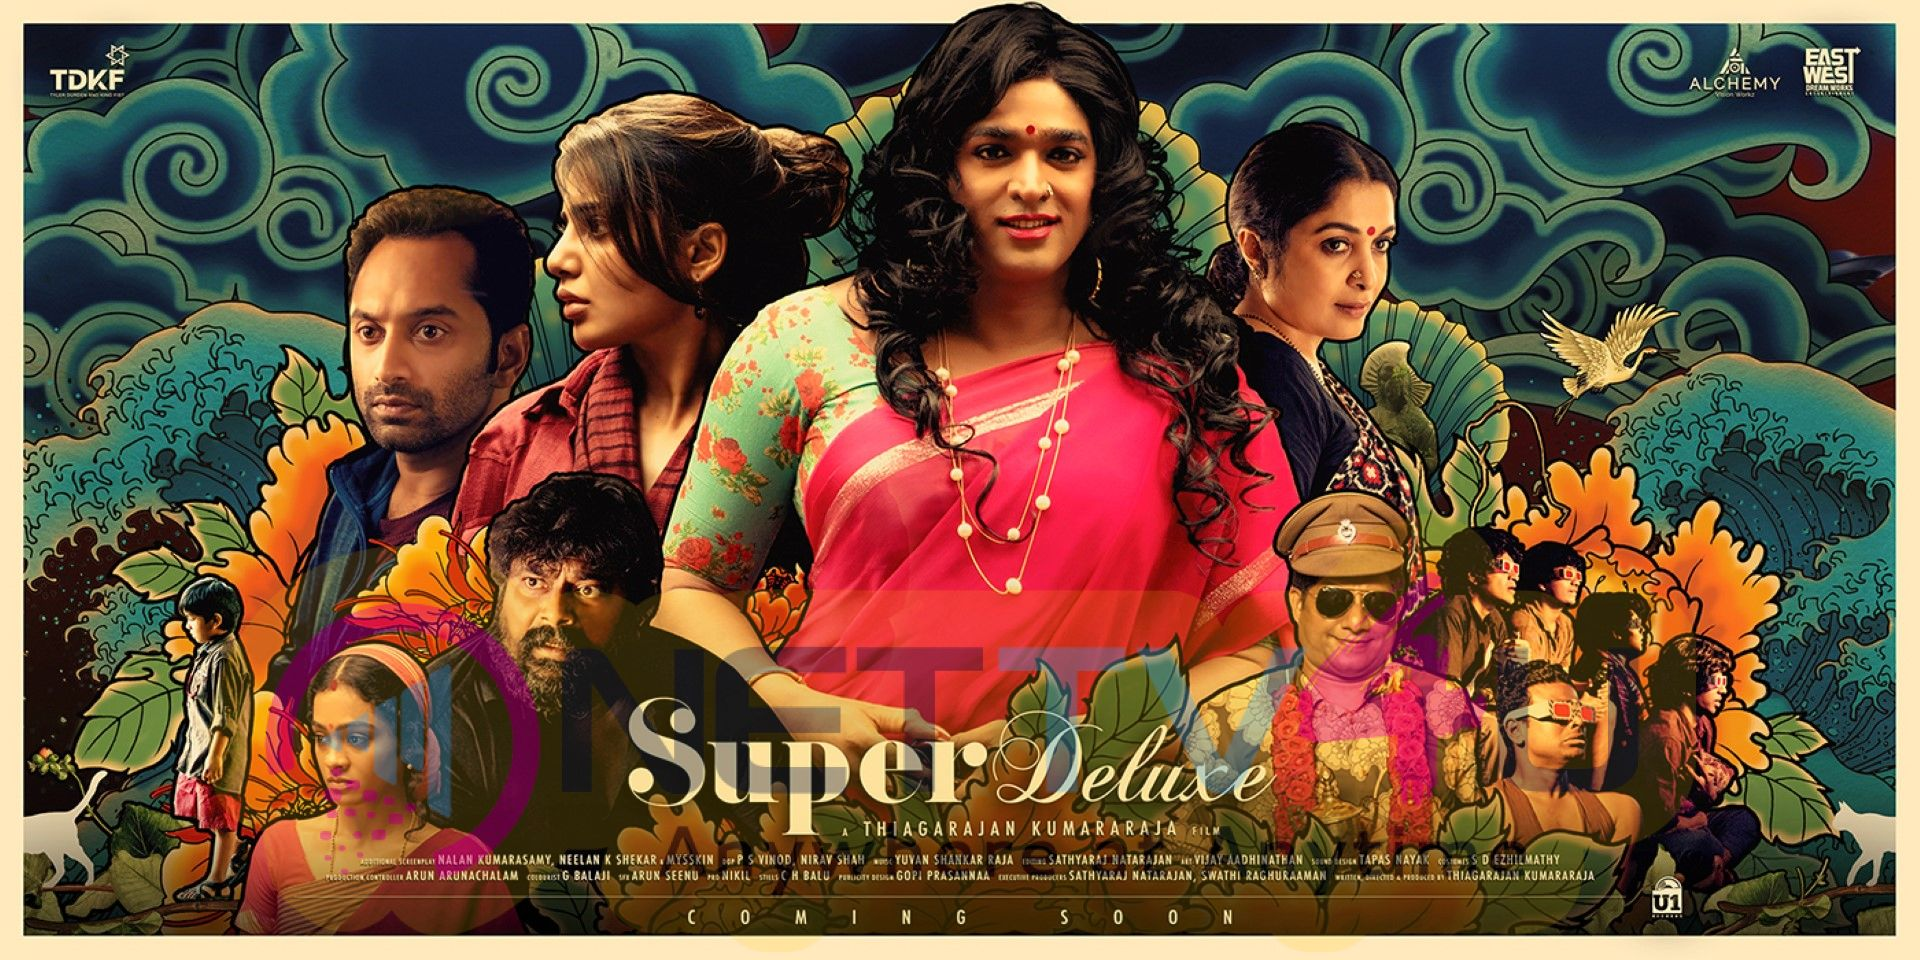 Super Deluxe Movie Poster Tamil Gallery